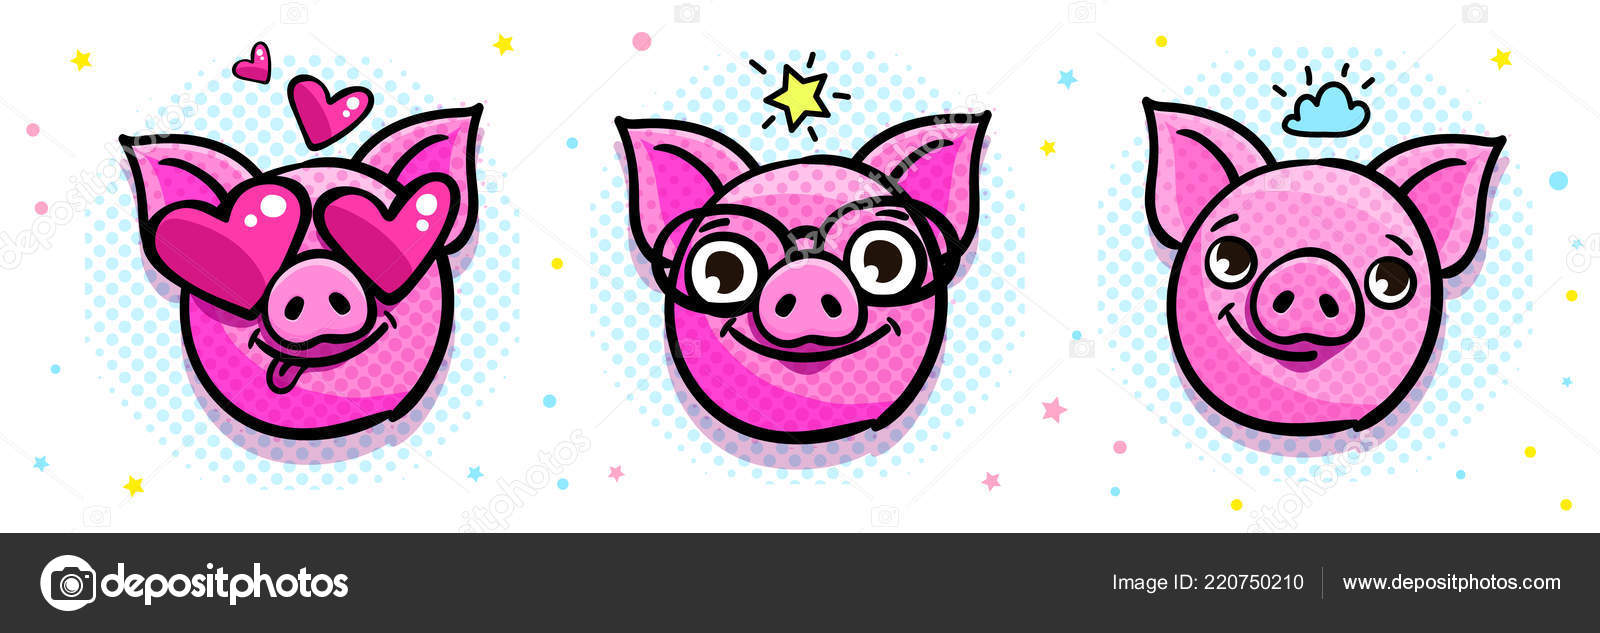 pig symbol 2019 new year head emoji pig pop art stock vector